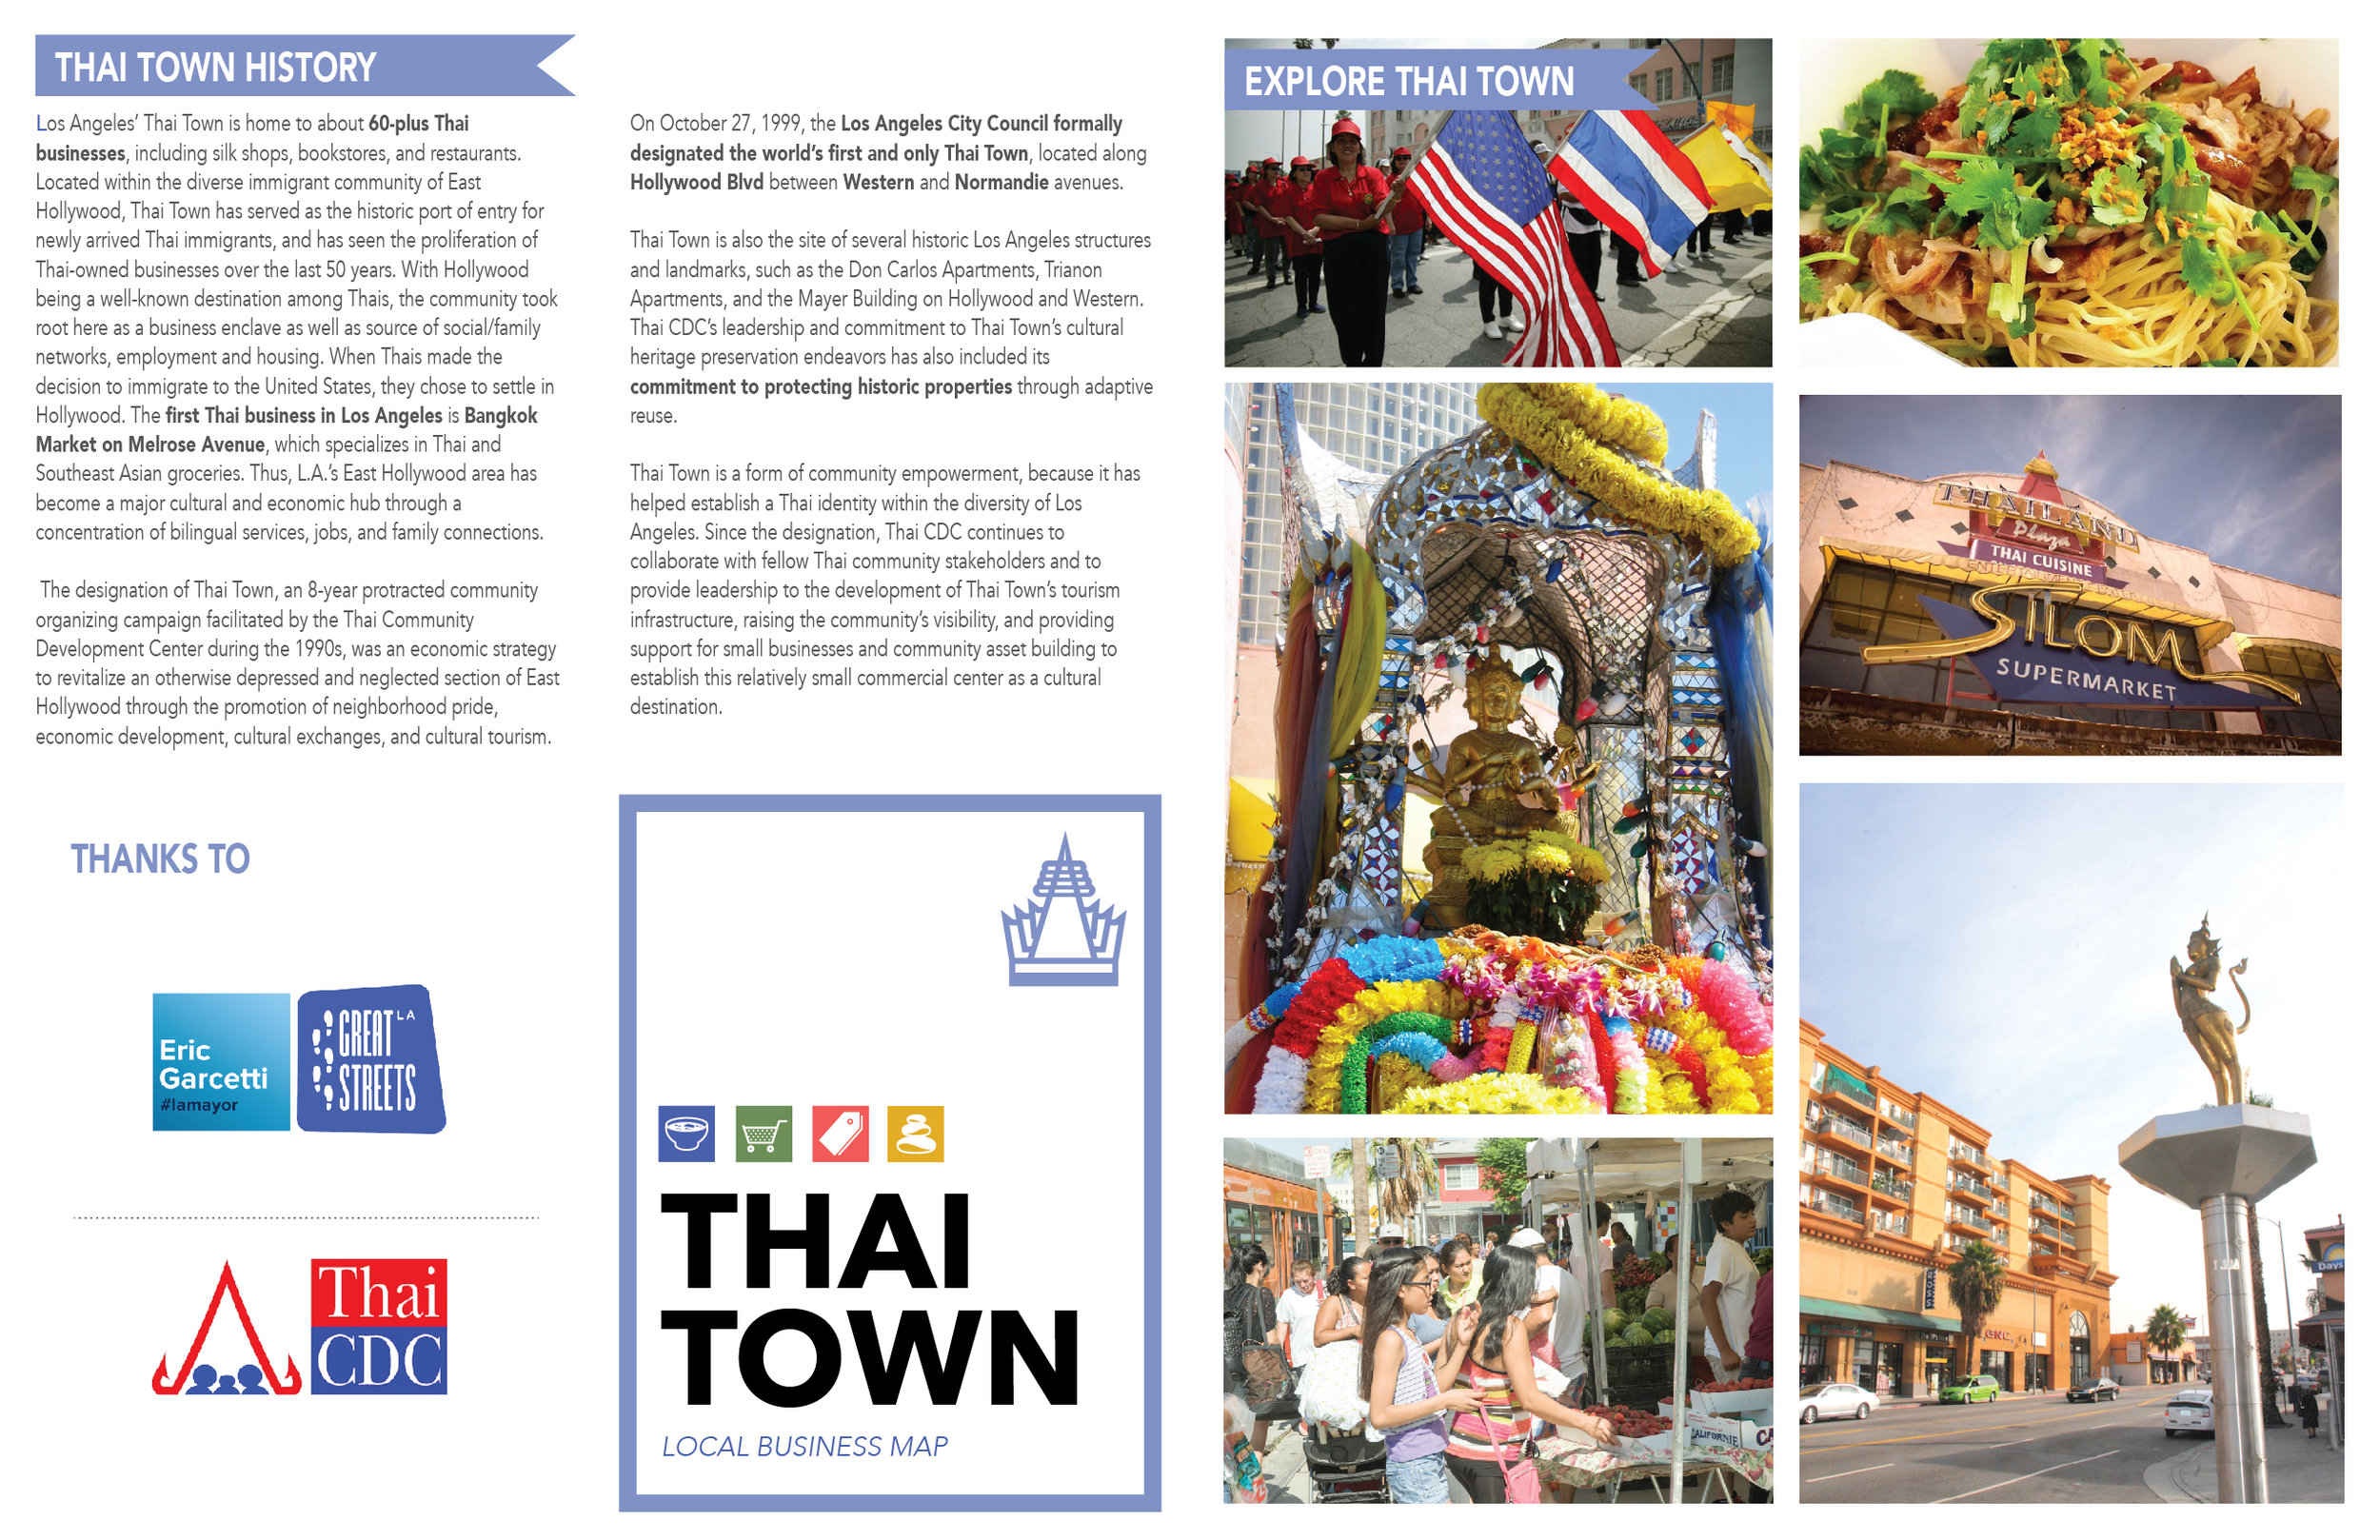 170922_ThaiTownLocalBusinessMap_Final-01.jpg